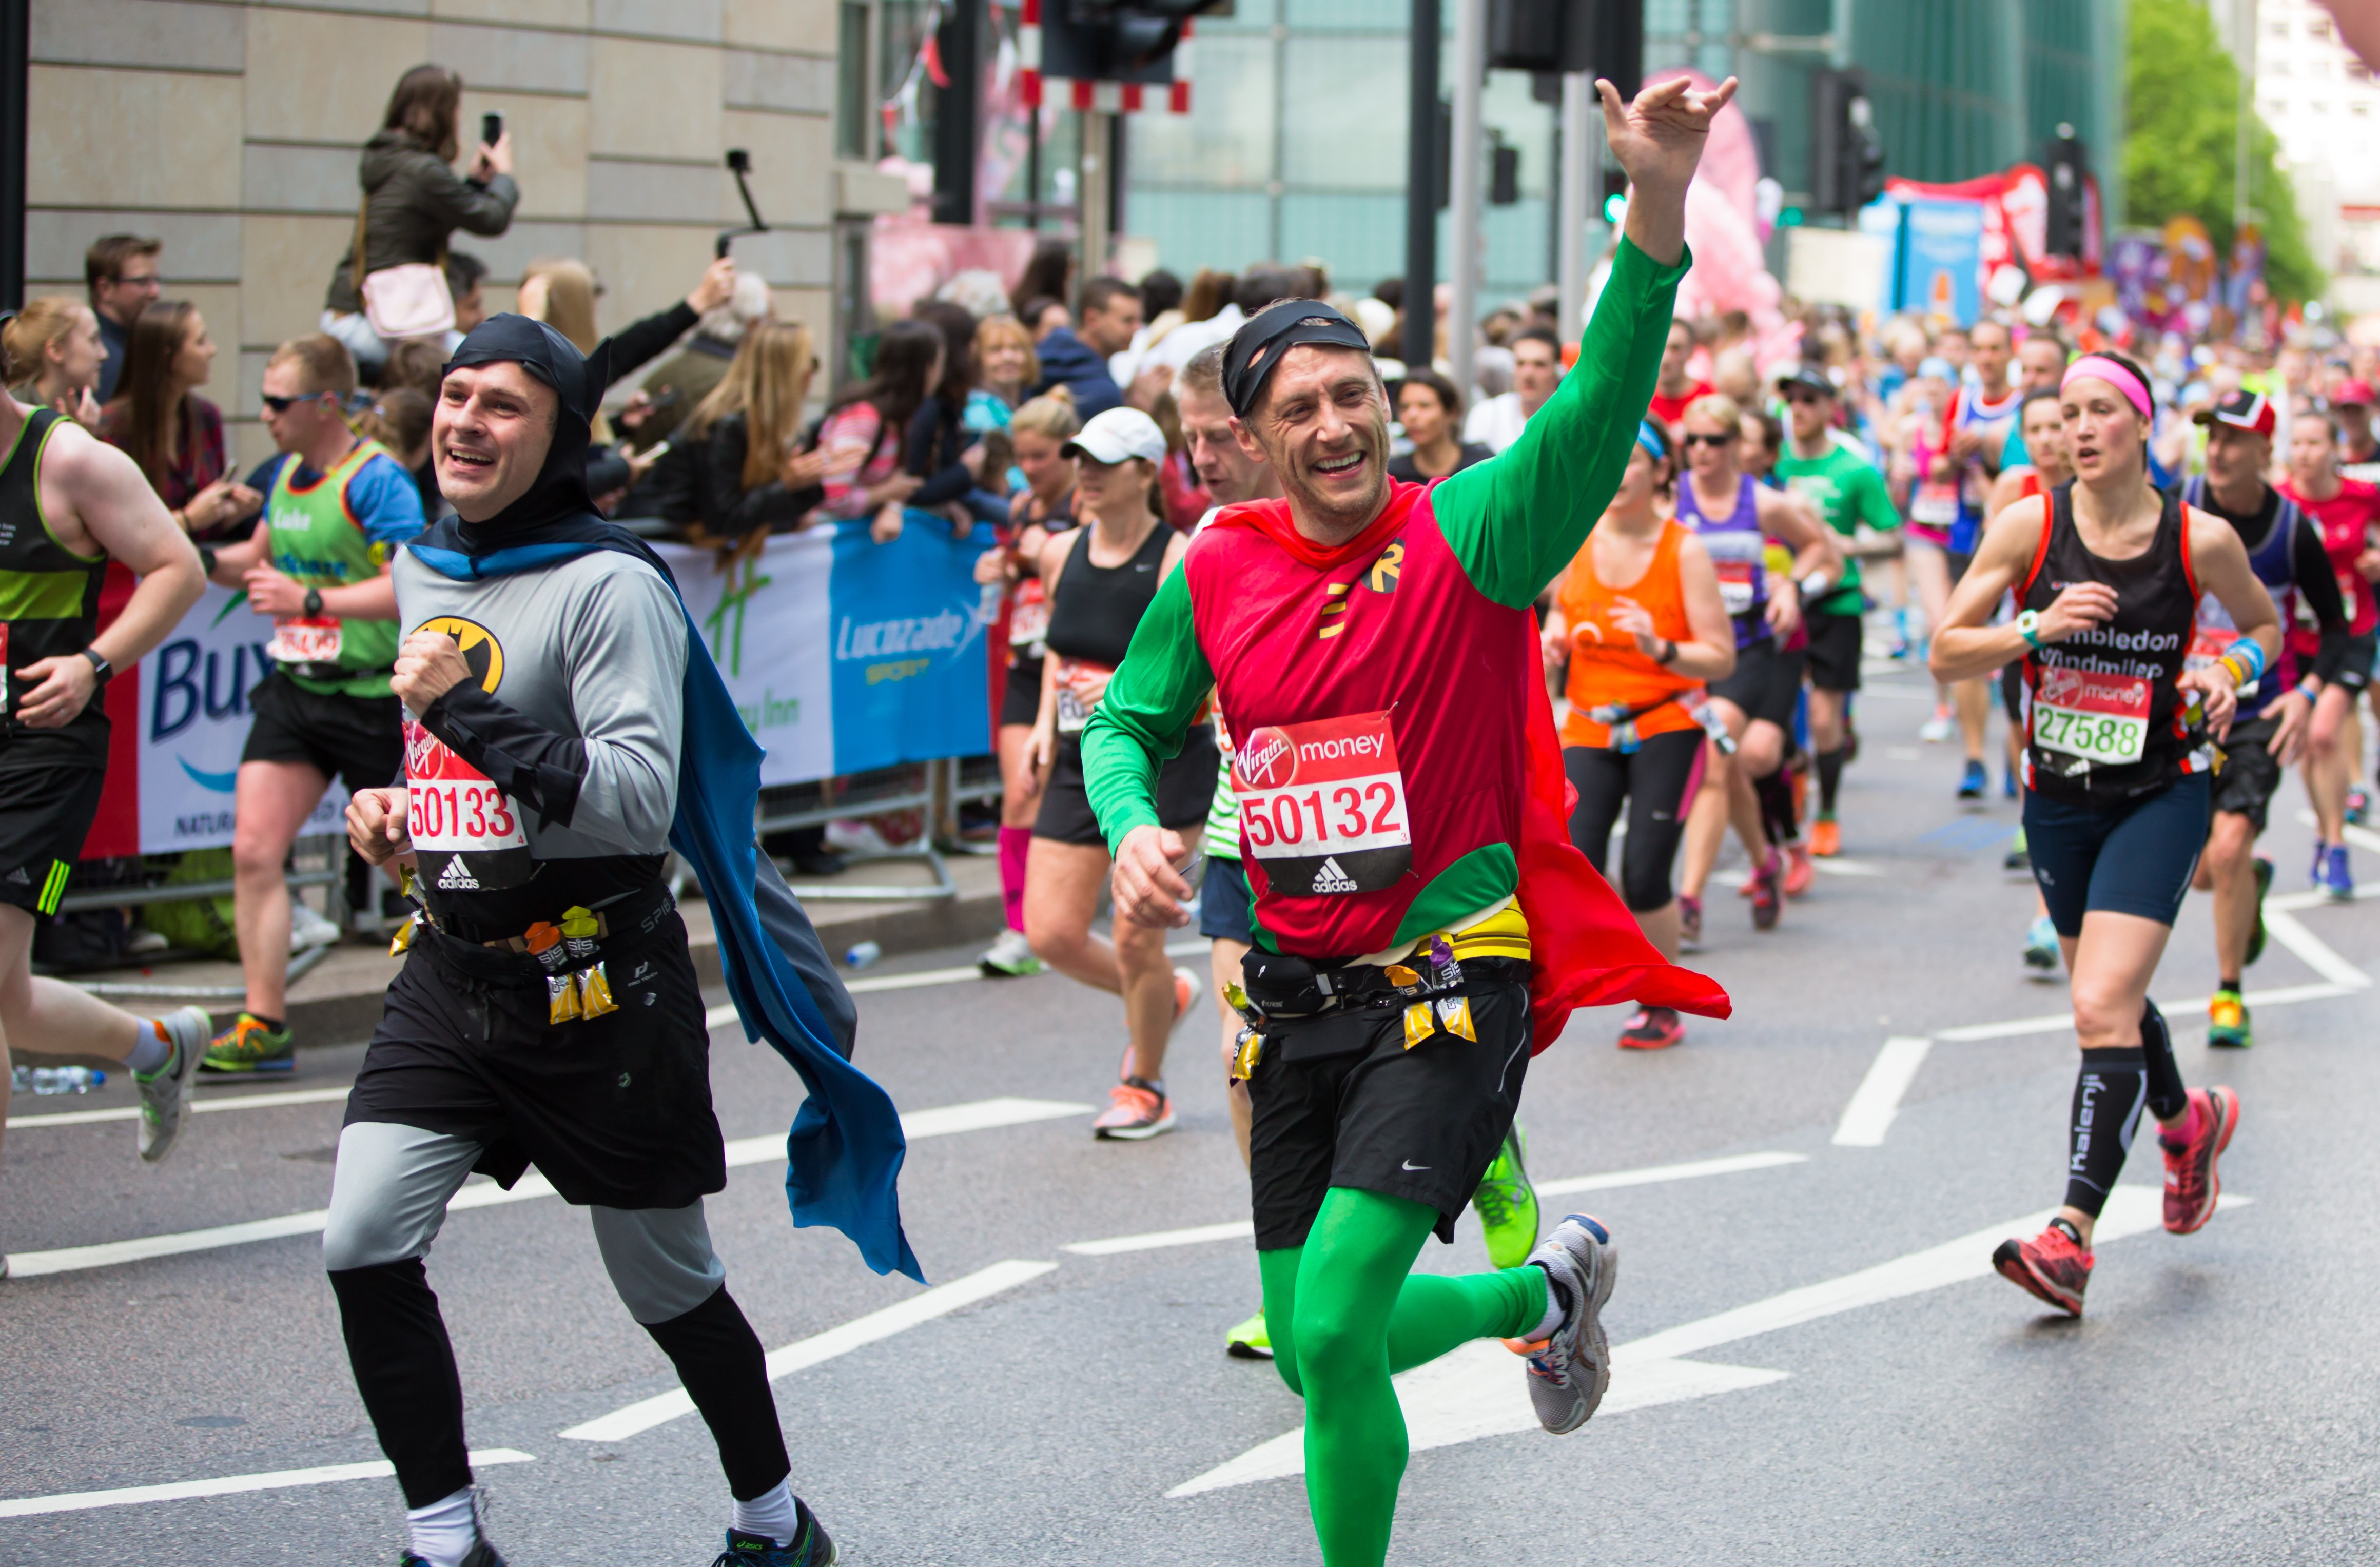 Two happy London Marathon runners in batman and Robin outfits